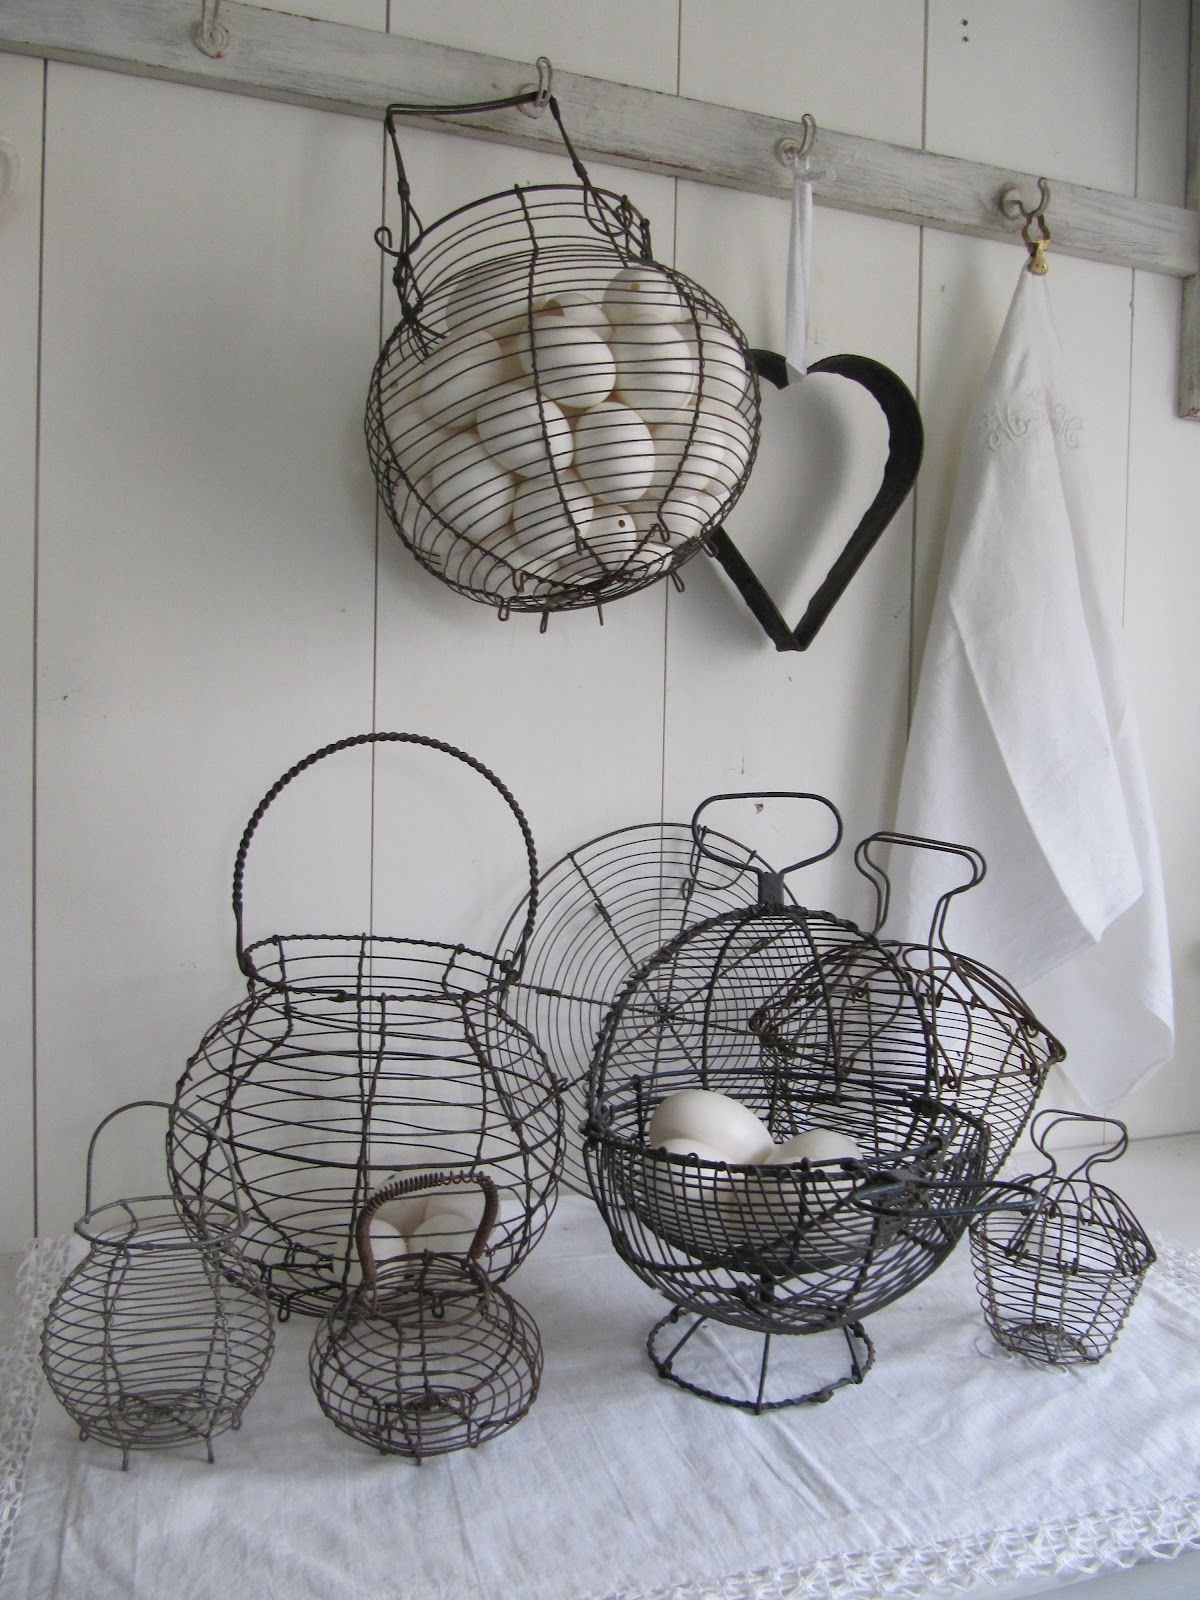 egg baskets | вариант коридора | Pinterest | Egg basket, Wire basket ...